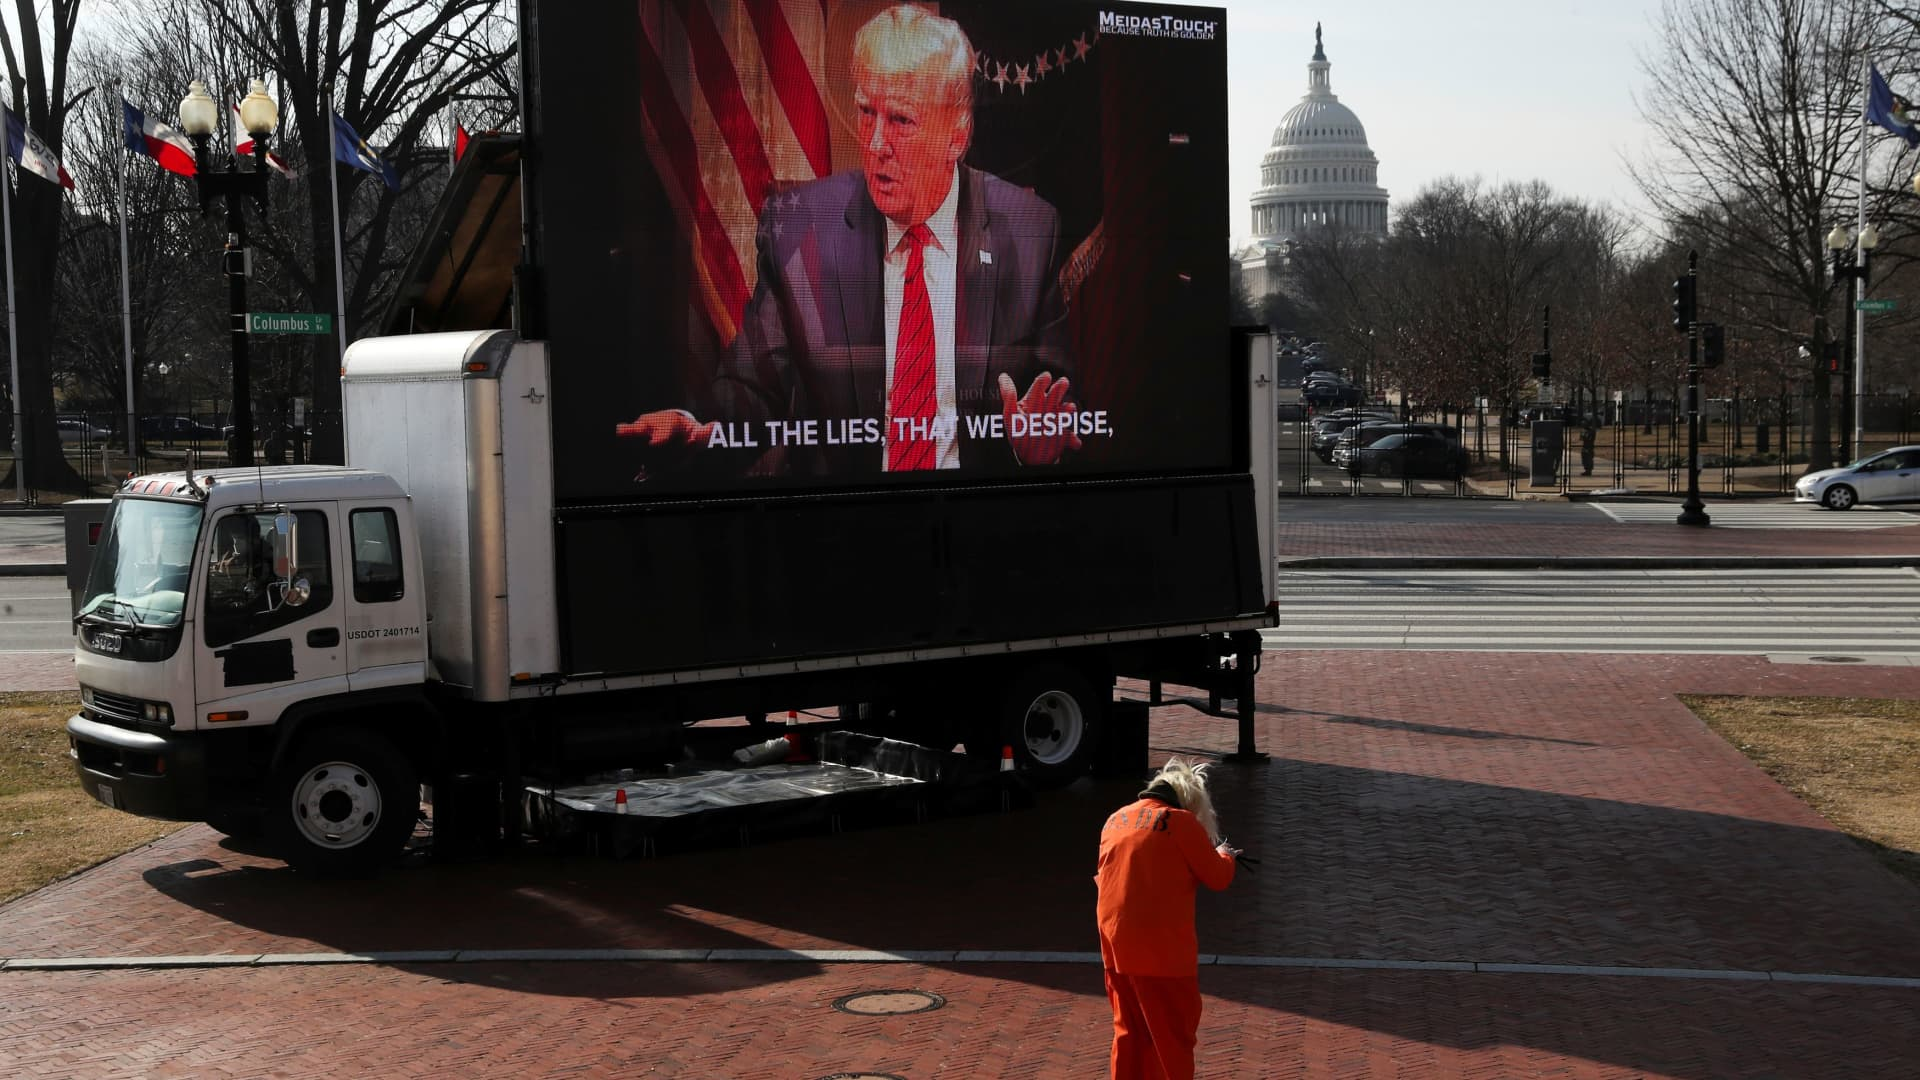 A protester is seen near a giant screen as it airs advertisements in support of convicting former U.S. President Donald Trump as the second day of his impeachment trial begins in Washington, February 10, 2021.